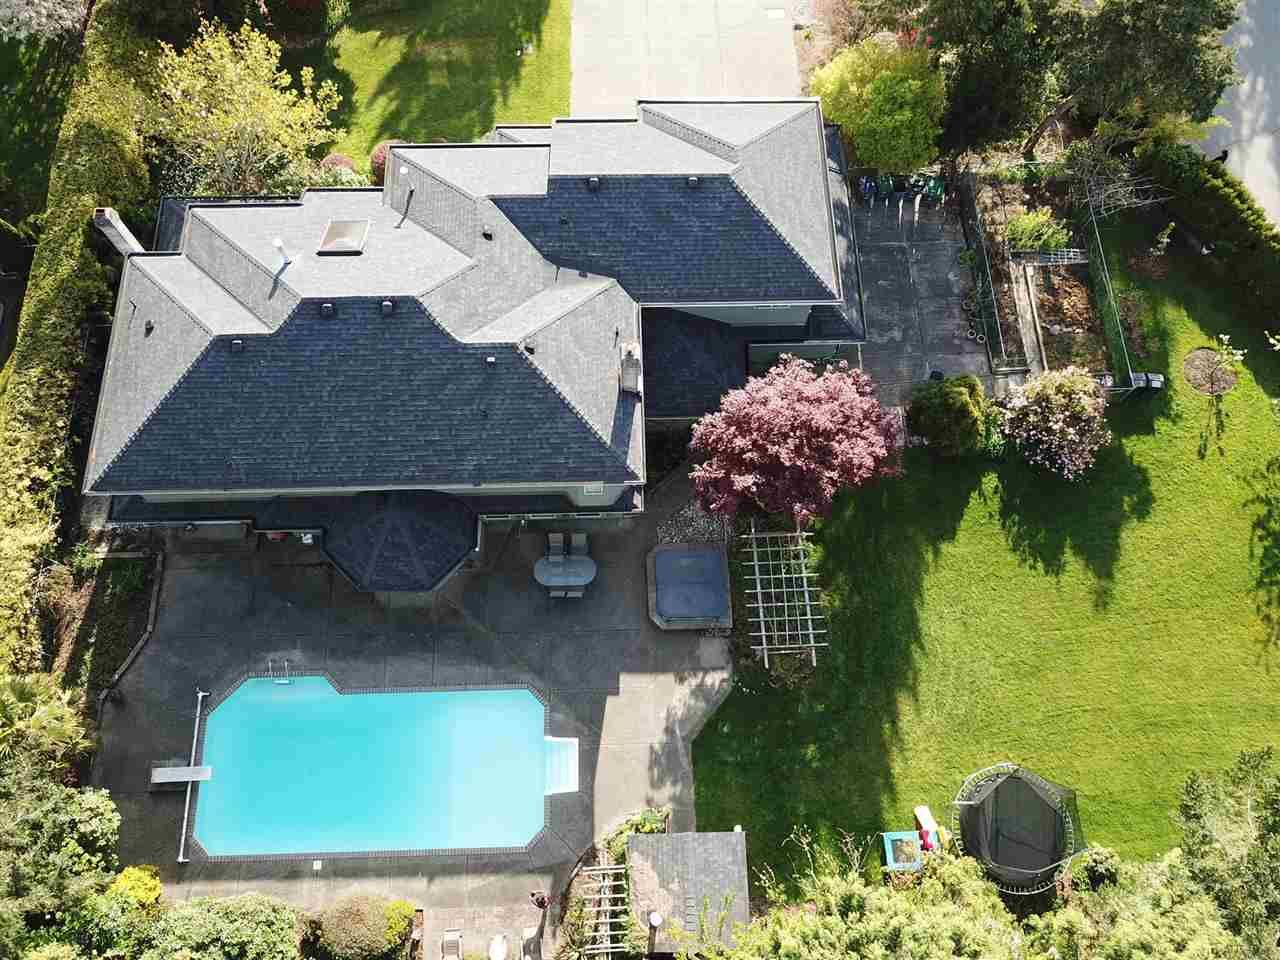 """Main Photo: 1911 134 Street in Surrey: Crescent Bch Ocean Pk. House for sale in """"Chatham Green Ocean Park"""" (South Surrey White Rock)  : MLS®# R2572714"""